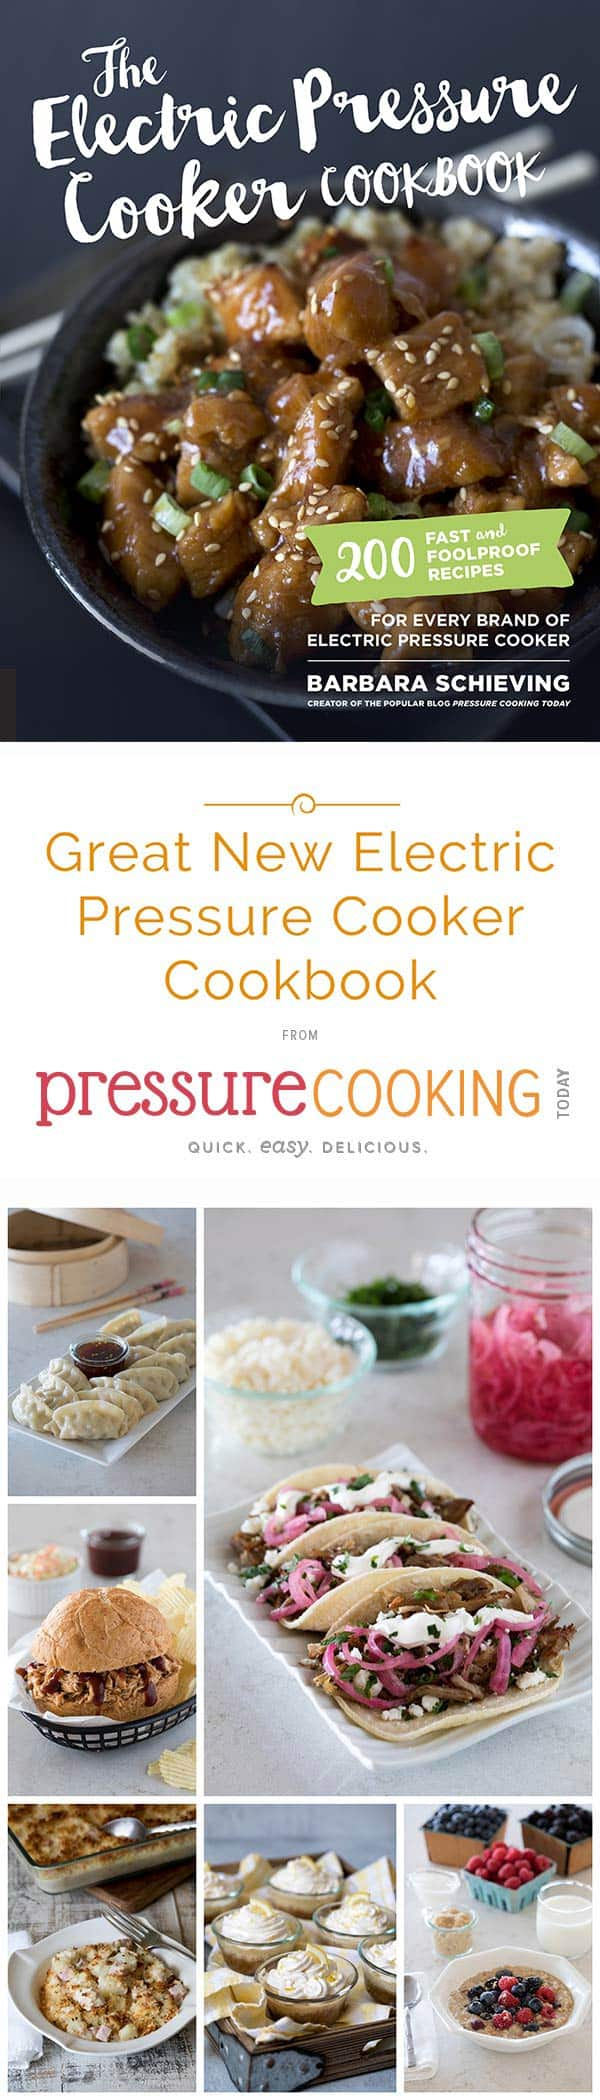 The Electric Pressure Cooker Cookbook - If you love the recipes on Pressure Cooking Today, you're going to love the cookbook. Thanks for pre-ordering it!